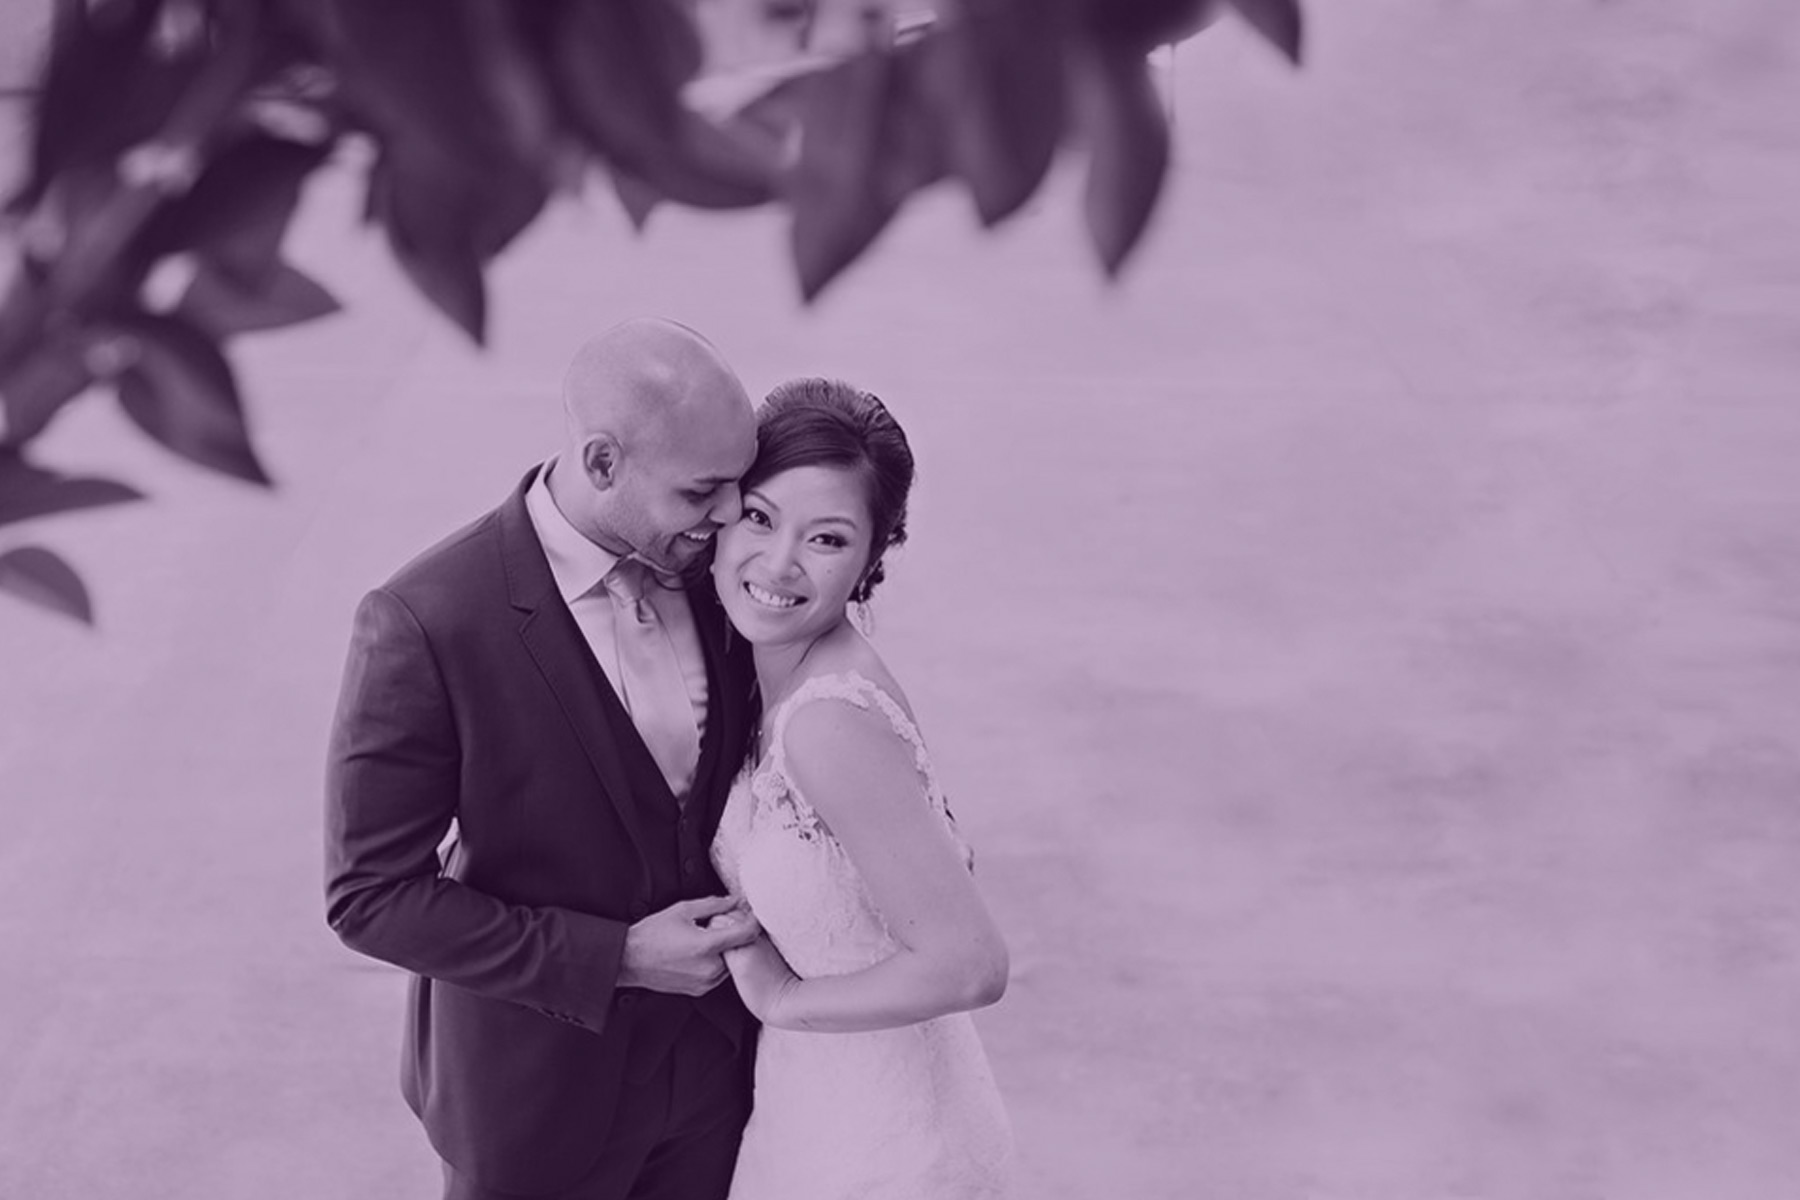 Groom and bride in an embrace under a tree